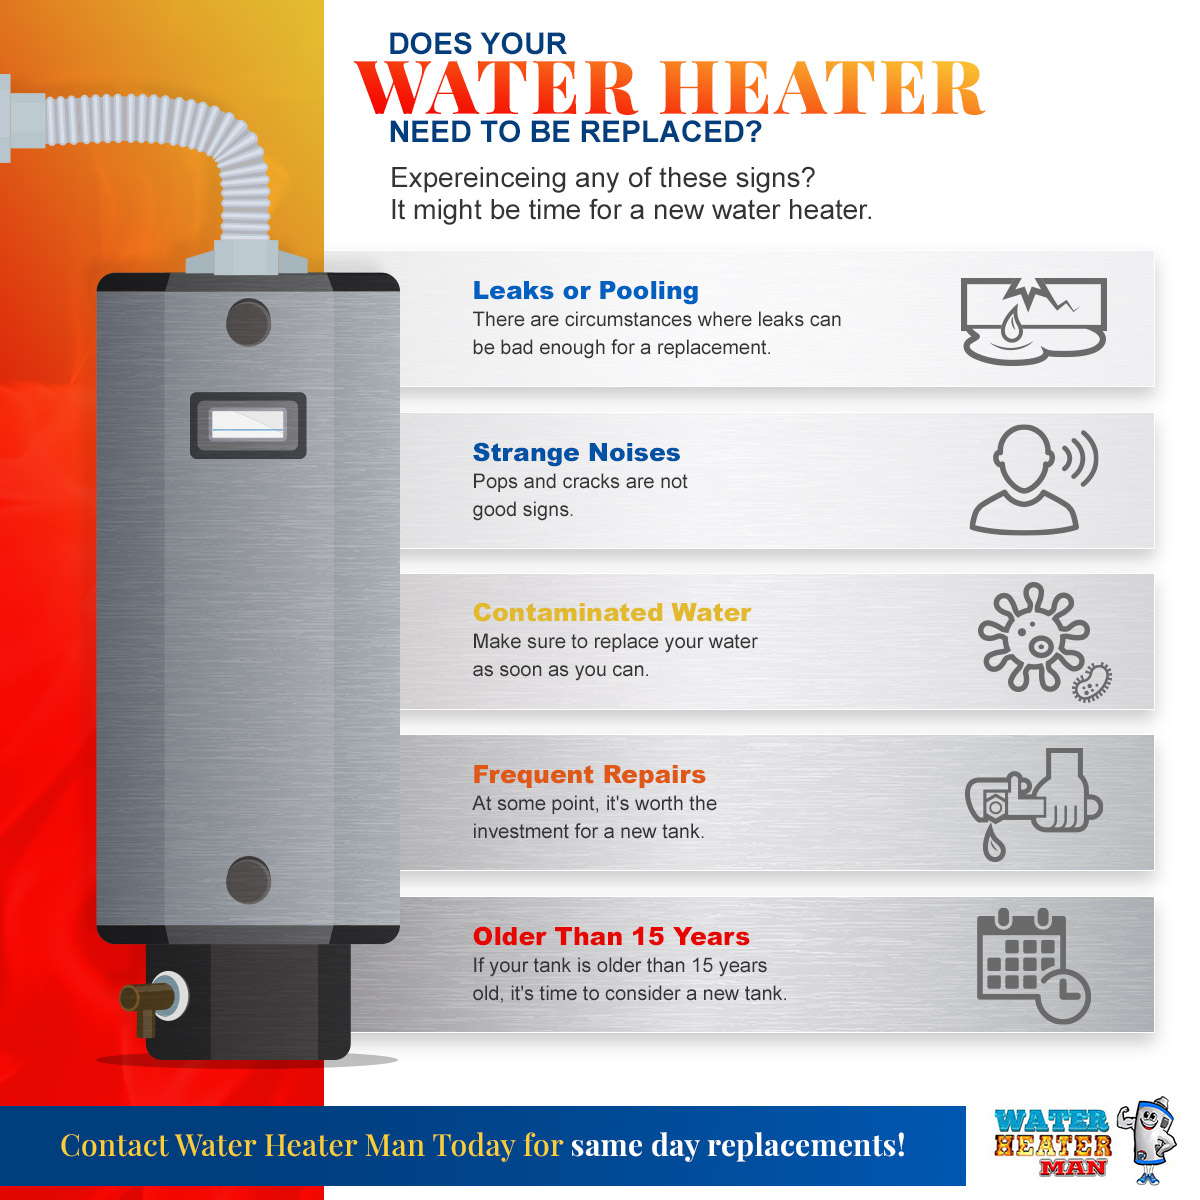 Does Your Water Heater Need to be Replaced.jpg